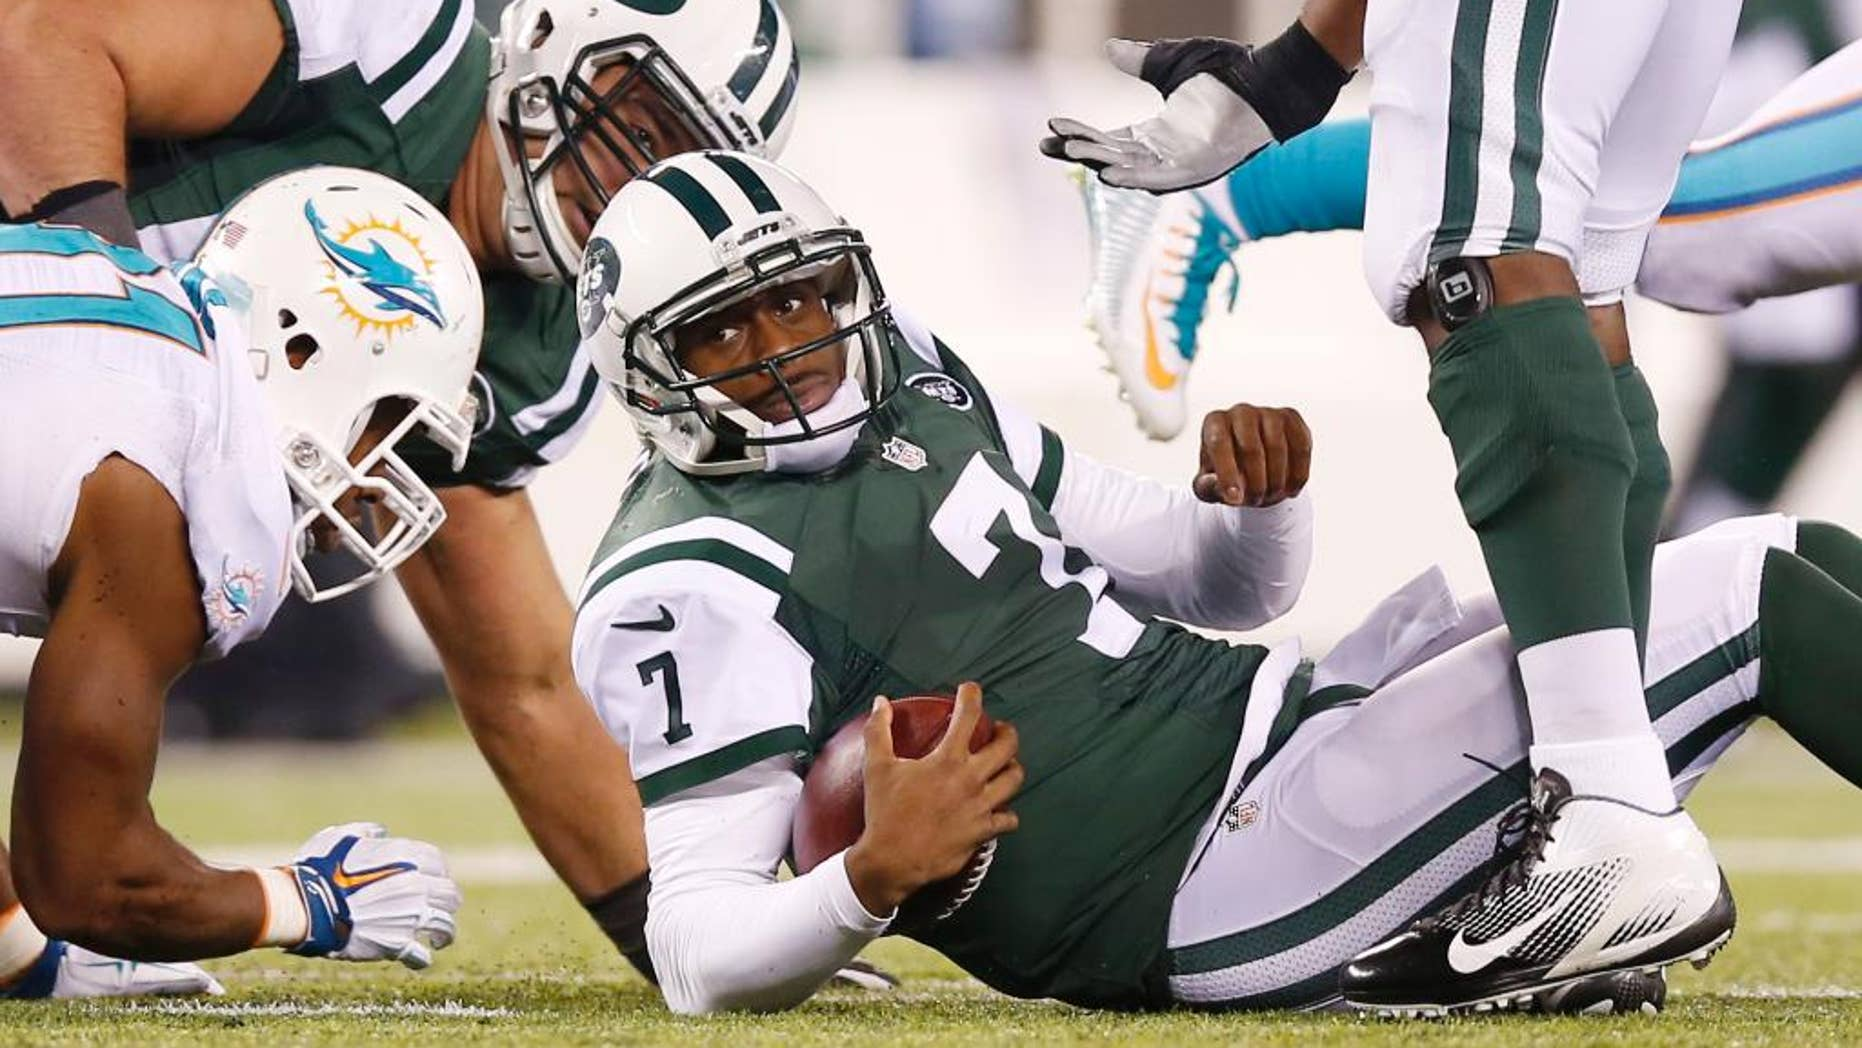 New York Jets quarterback Geno Smith (7) reacts after being sacked by the Miami Dolphins during the fourth quarter of an NFL football game, Monday, Dec. 1, 2014, in East Rutherford, N.J. (AP Photo/Kathy Willens)